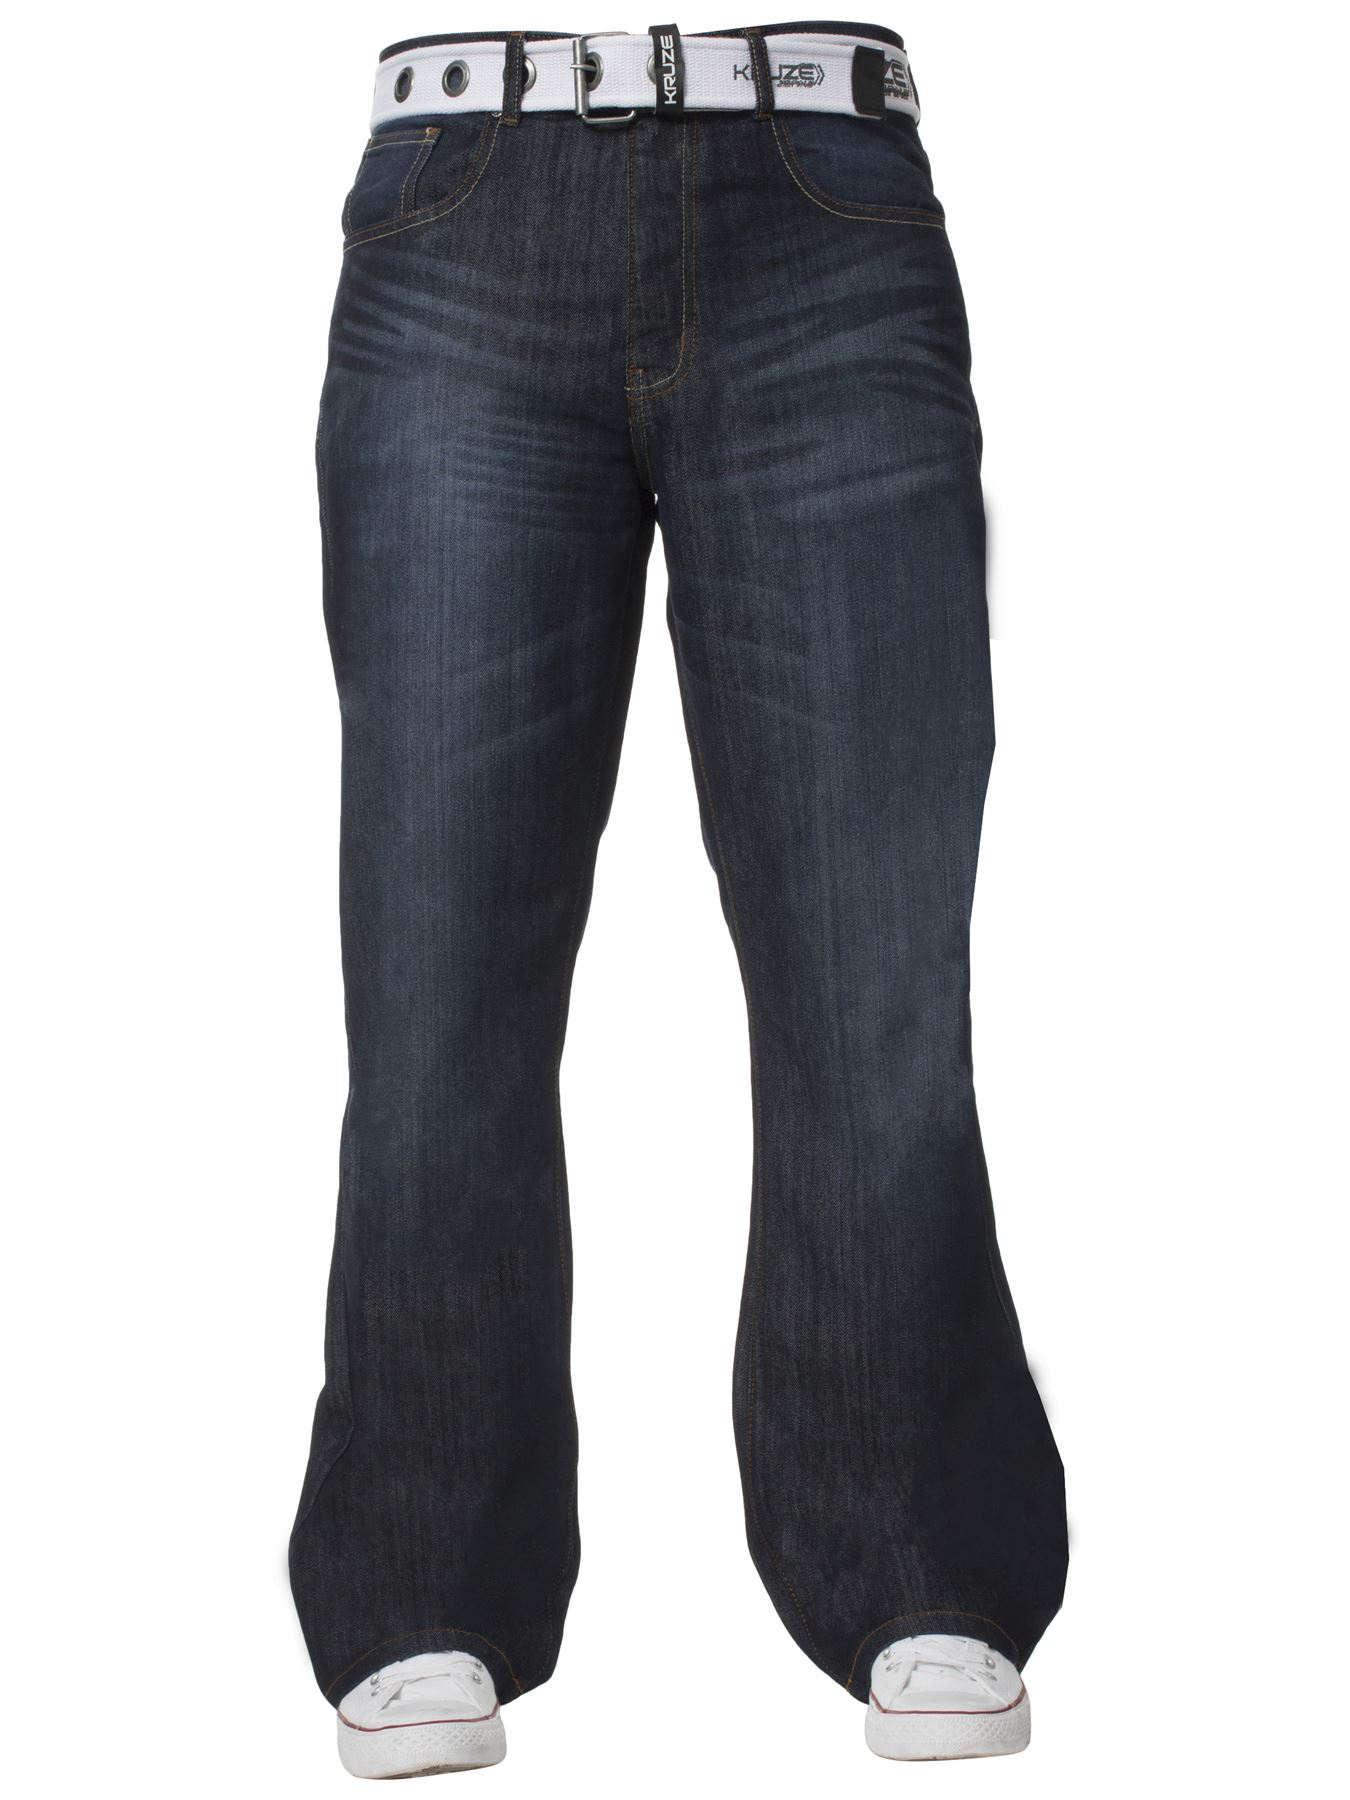 Kruze-Denim-New-Mens-Bootcut-Jeans-Wide-Leg-Flare-Pants-King-Big-All-Waist-Sizes thumbnail 12